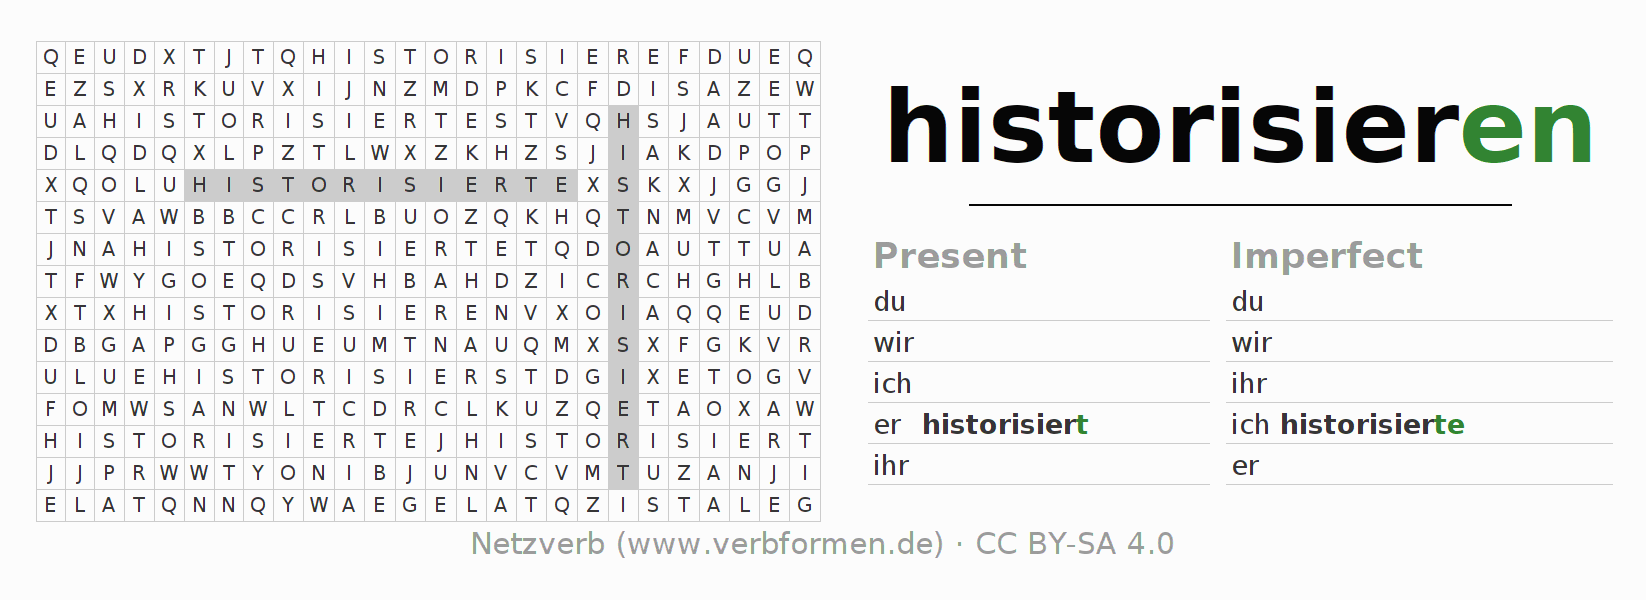 Word search puzzle for the conjugation of the verb historisieren